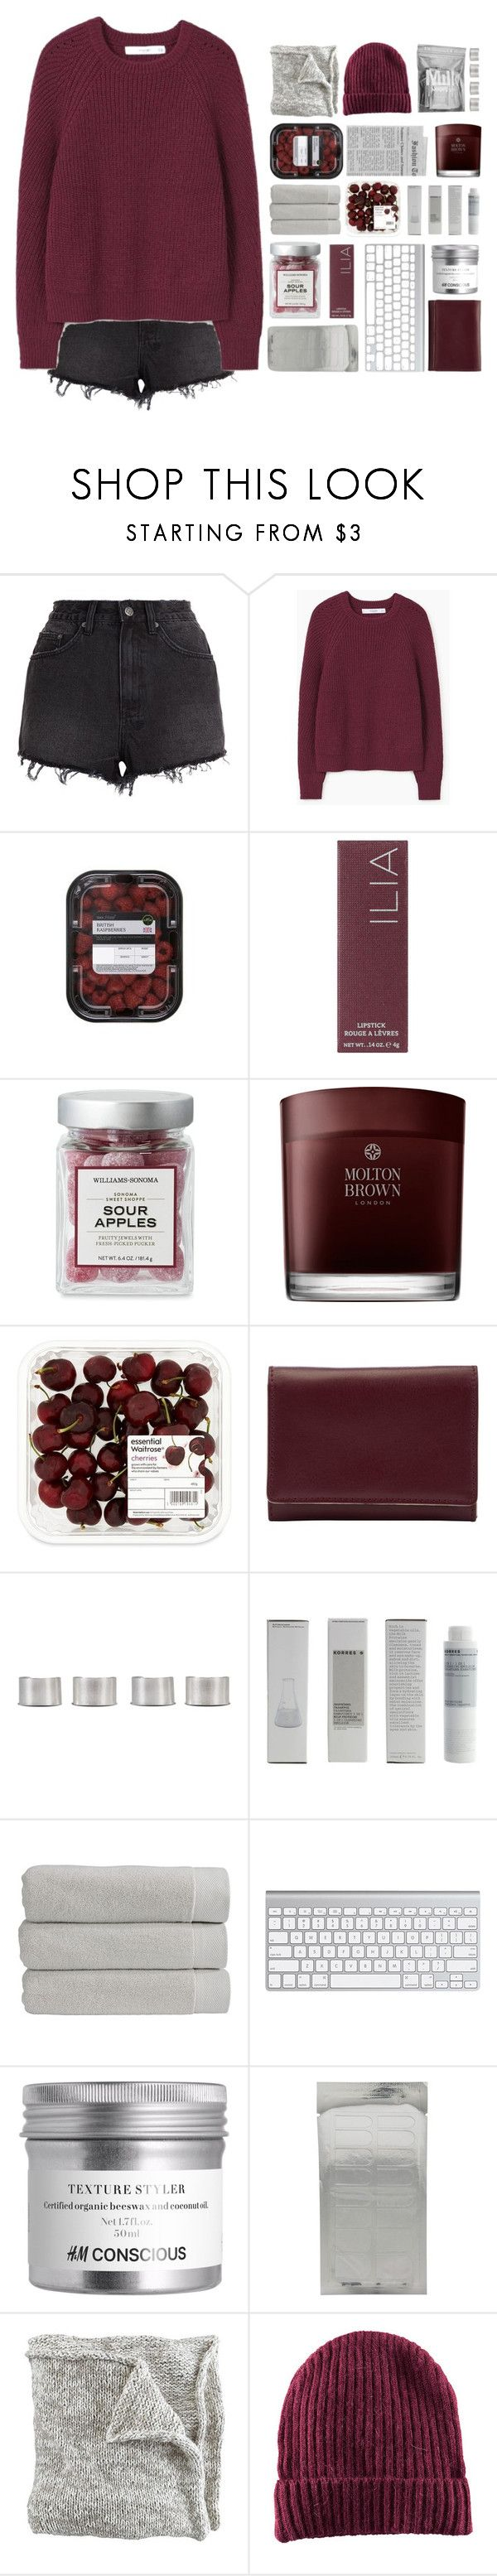 """OFFICIAL GROUP ACCOUNT!"" by stardus-t ❤ liked on Polyvore featuring Ksubi, Ilia, Molton Brown, John Lewis, Maison Margiela, Korres, Christy, H&M and MILK MAKEUP"